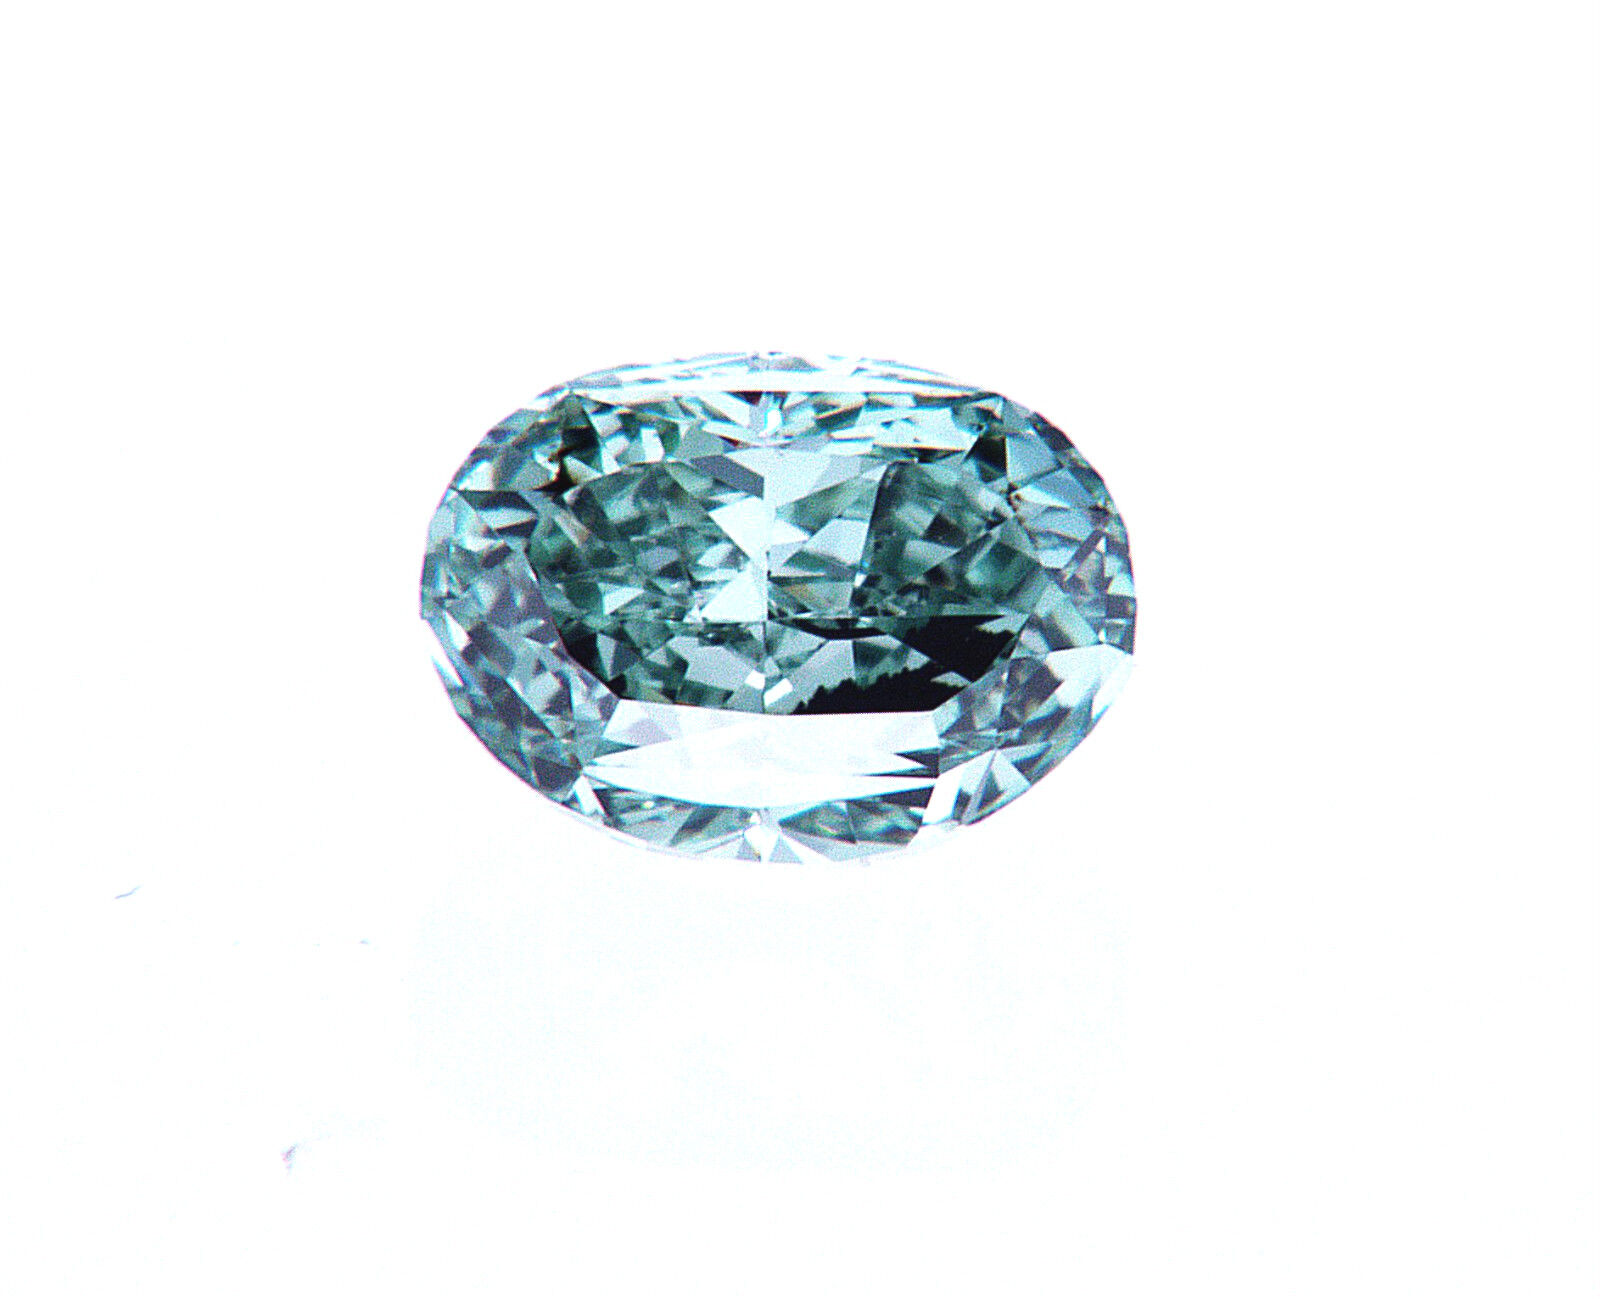 1/2 CT NATURAL FANCY VIVID BLUE GREEN COLOR GIA Certified Loose Diamond Oval Cut